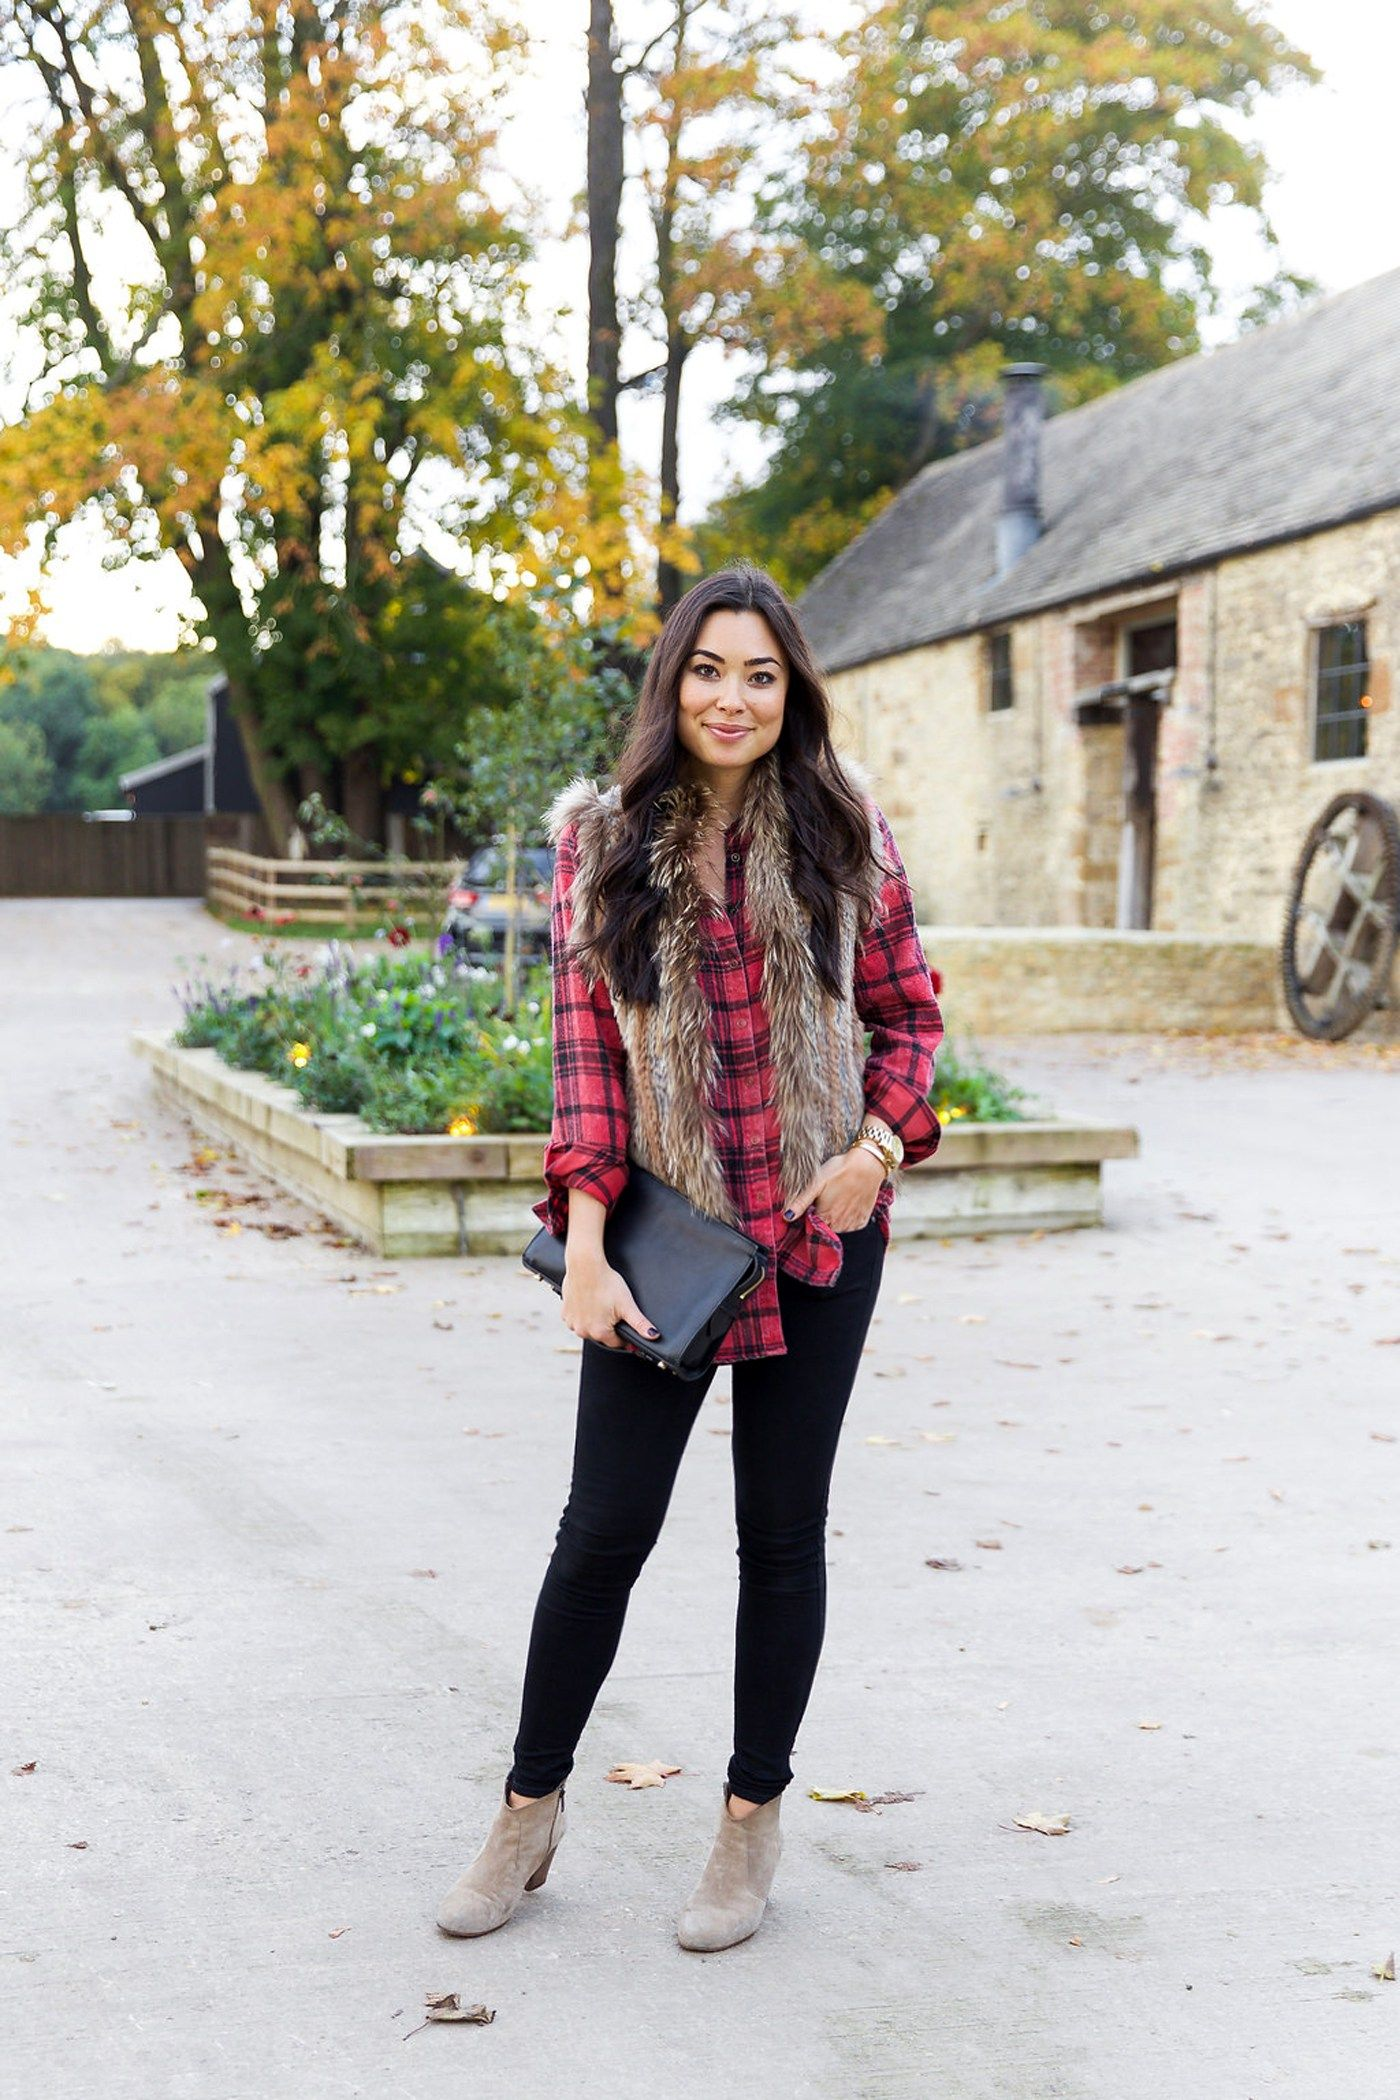 b7adbd0680331 With Love From Kat    Weekends in the Country. Red and black plaid long  shirt+black skinny denim+pale brown ankle boots+brown fur vest+black clutch.